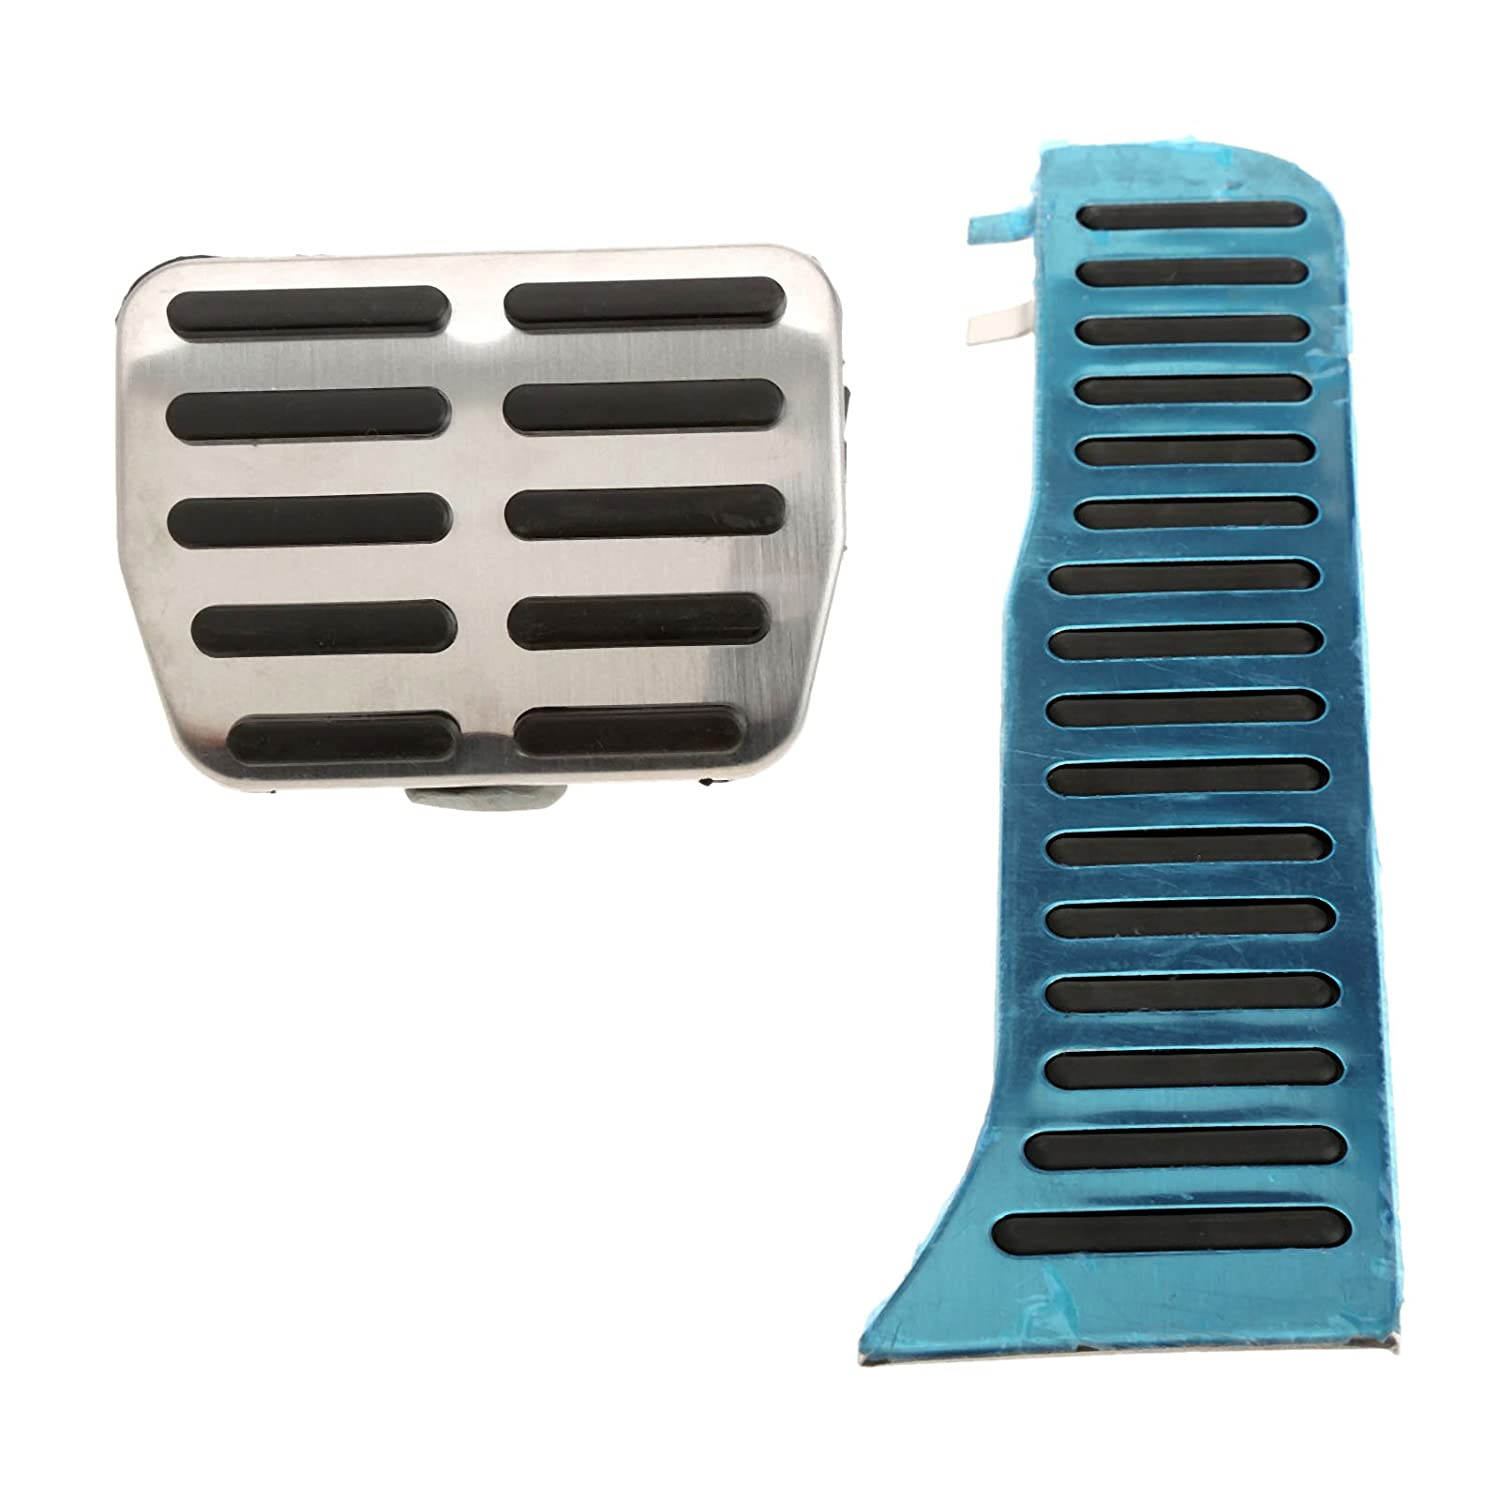 Mtsooning 1 Set Non Drilling Fuel Gas Brake Foot Pedal Plate Pad for Audi Q3 at